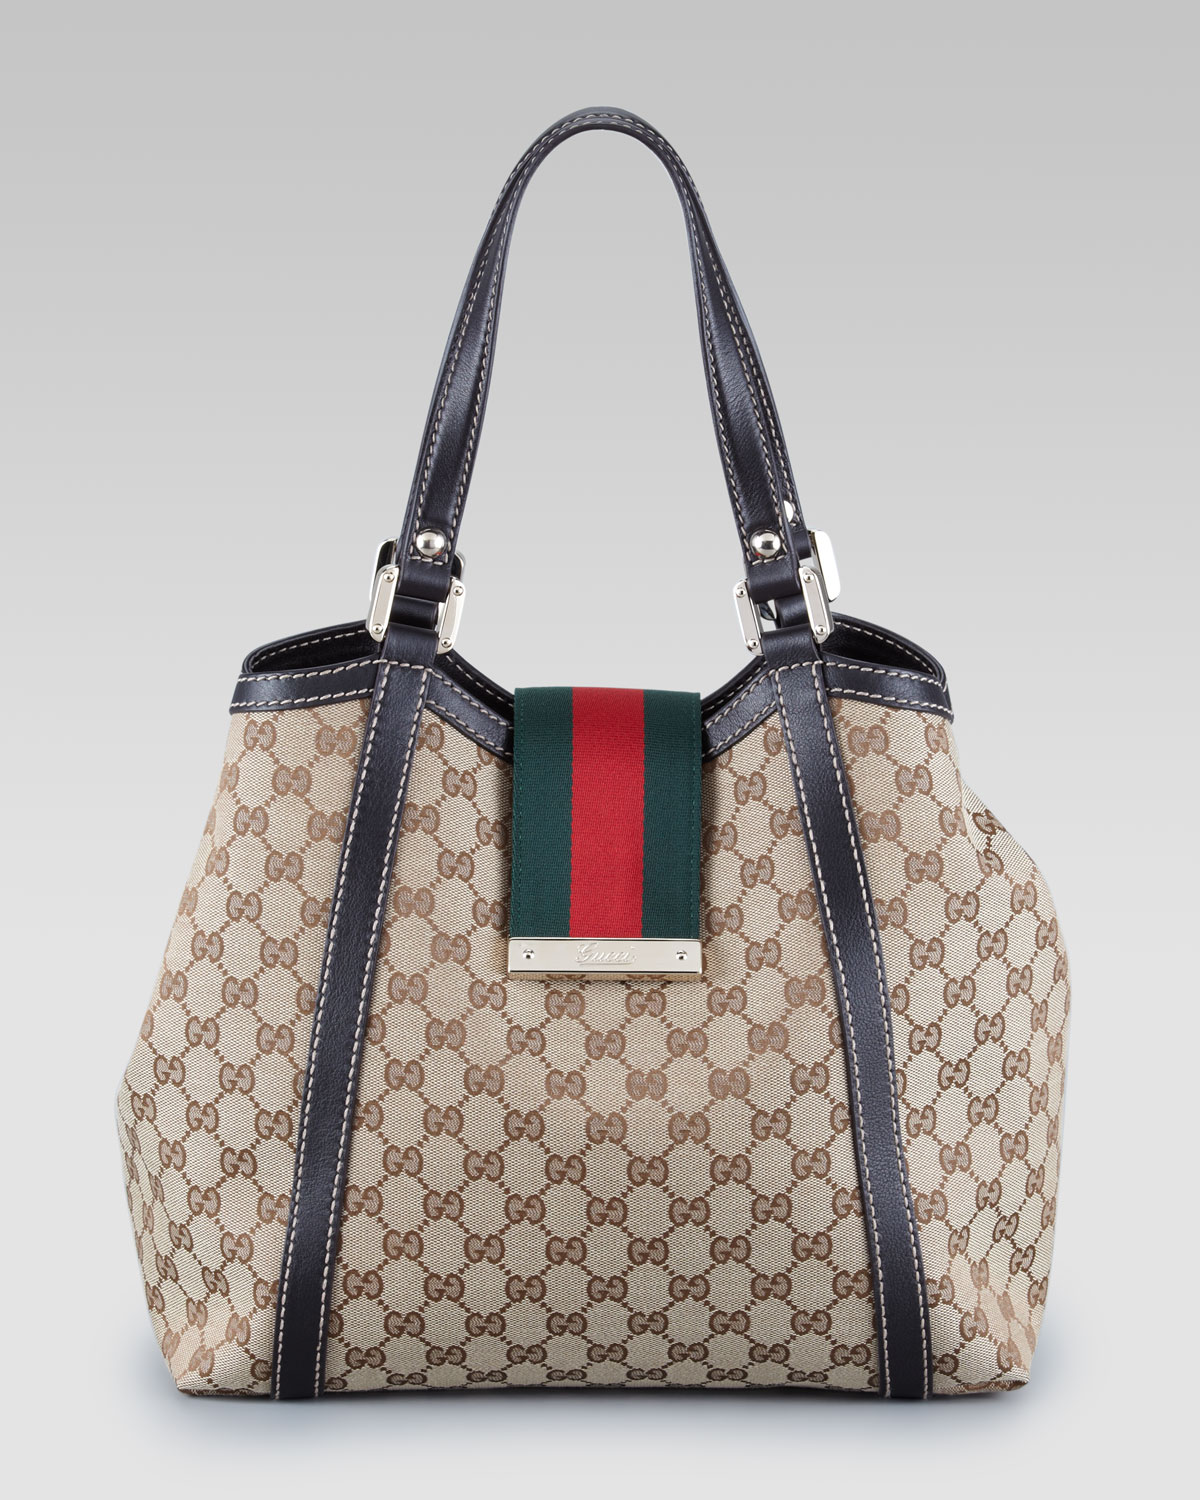 gucci new web gg tote bag large in green